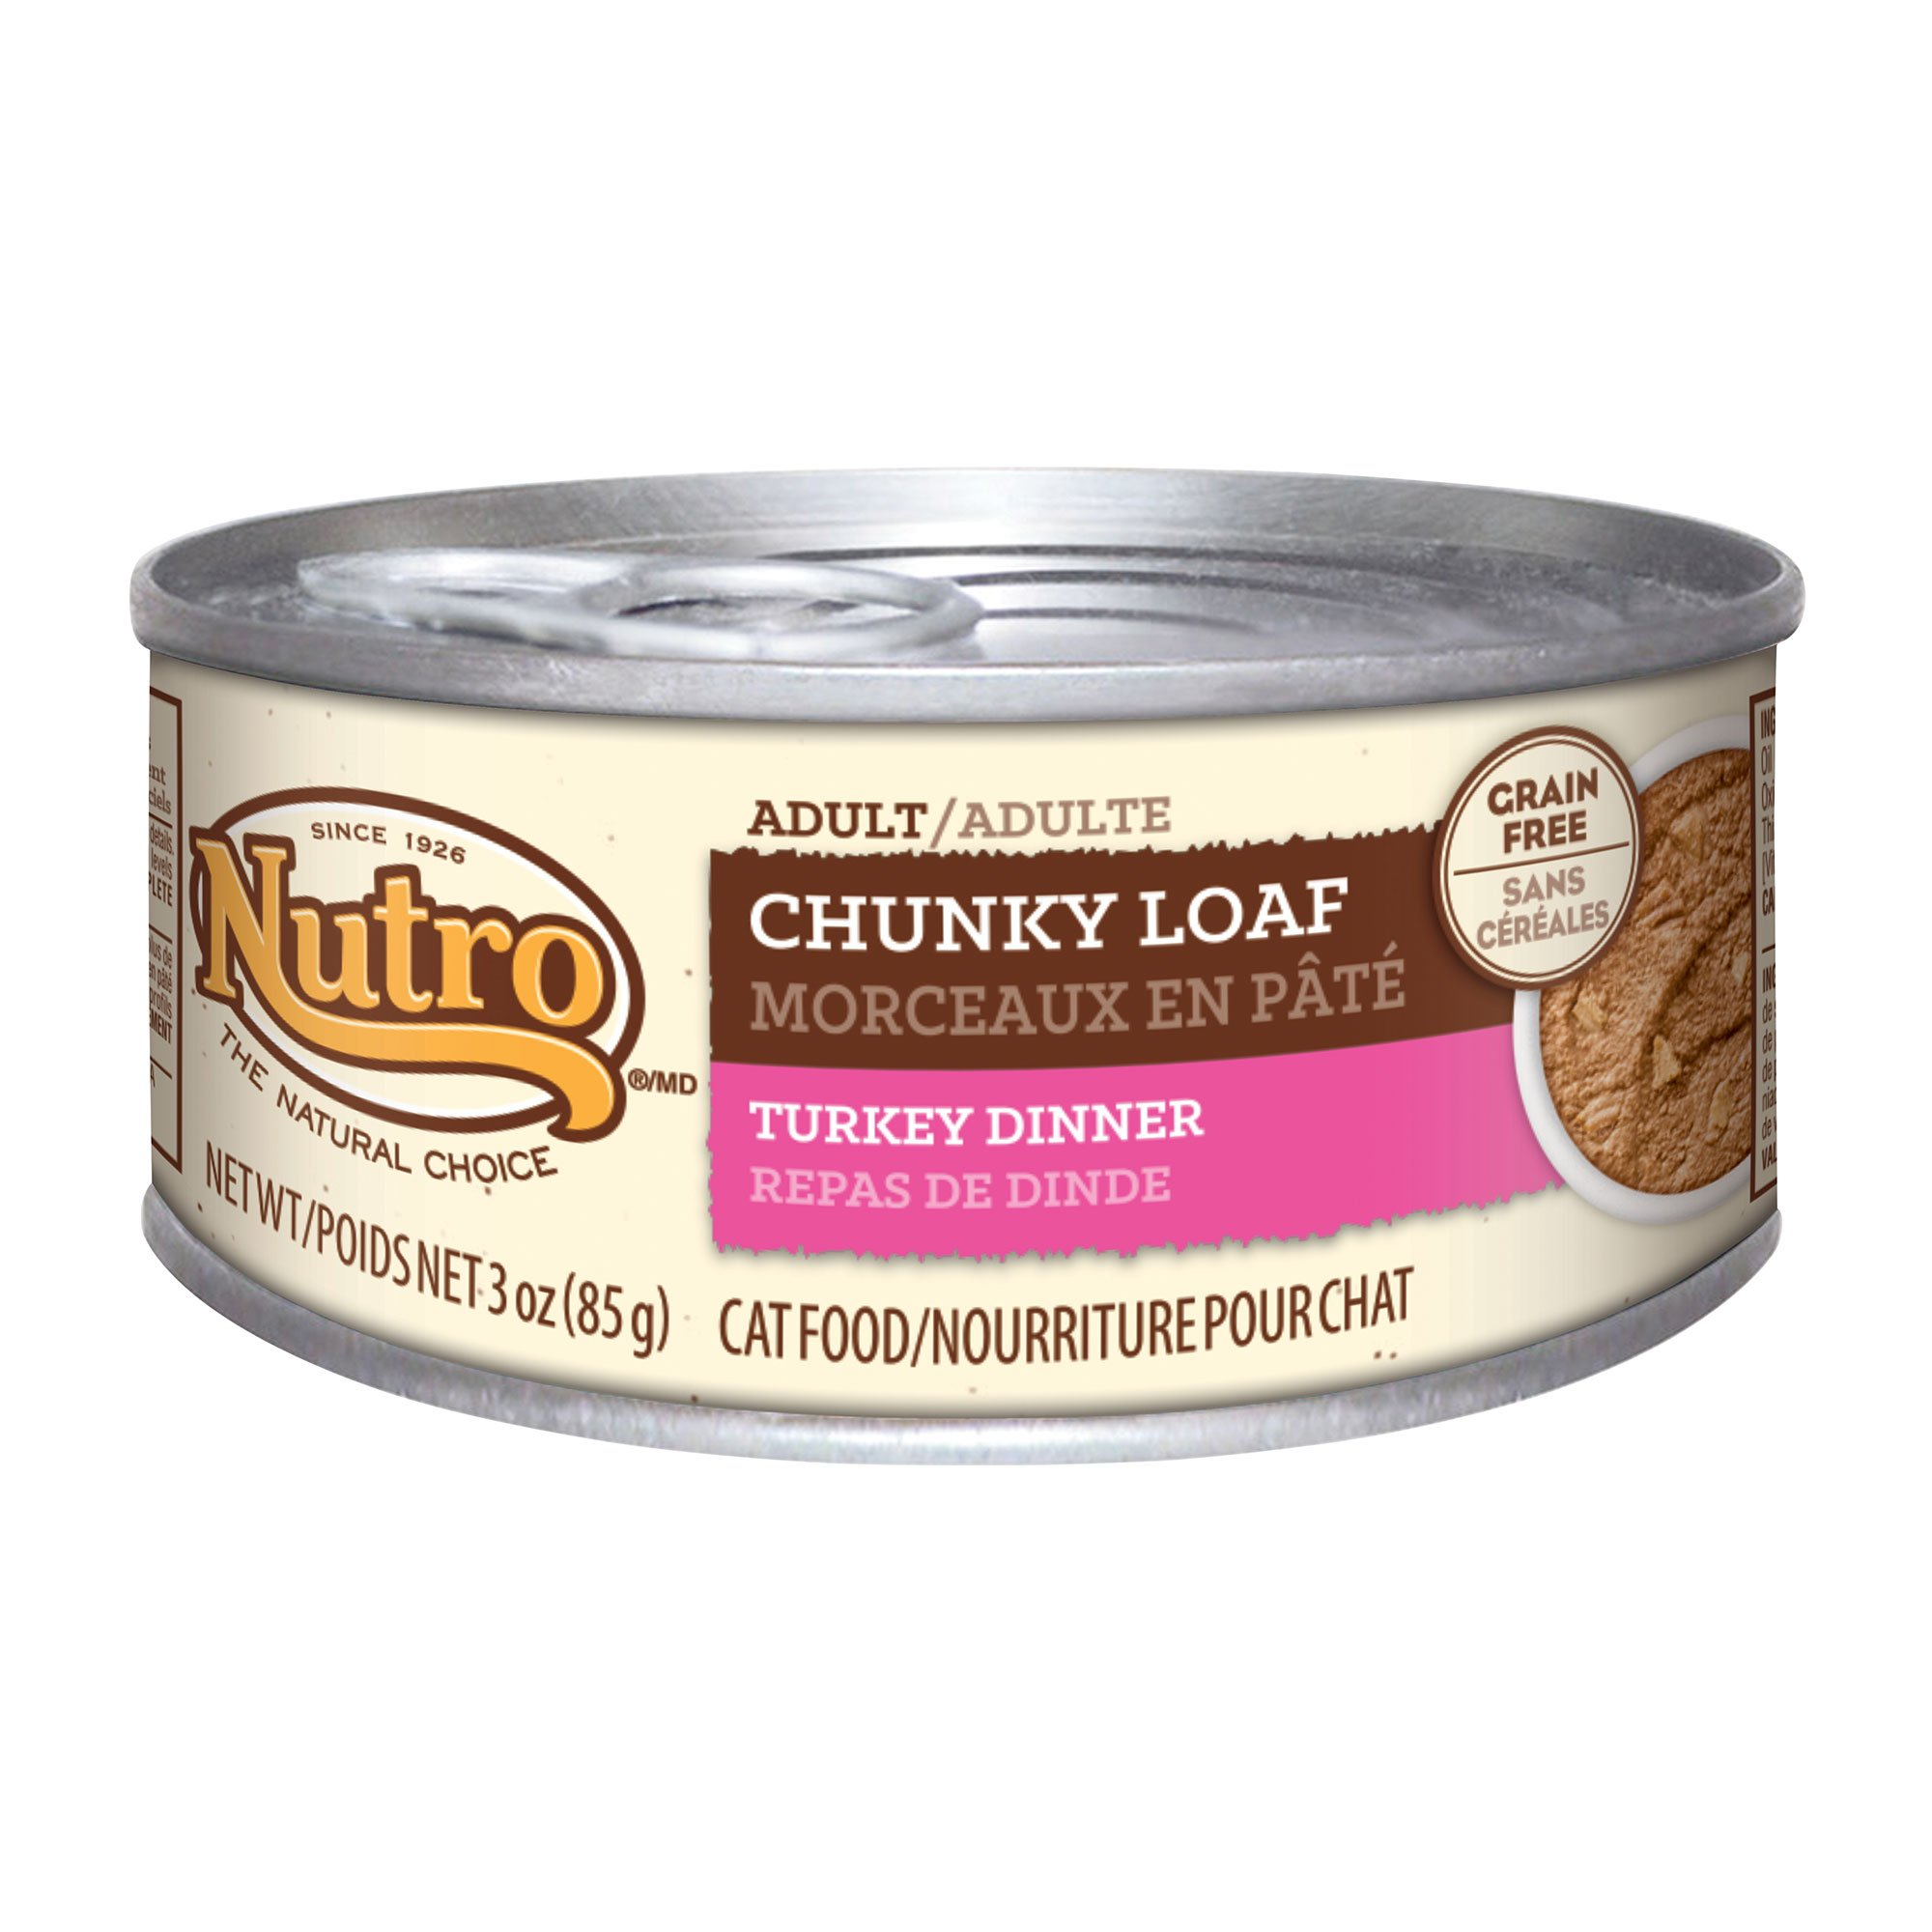 Nutro Chunky Loaf Canned Adult Cat Food, Turkey